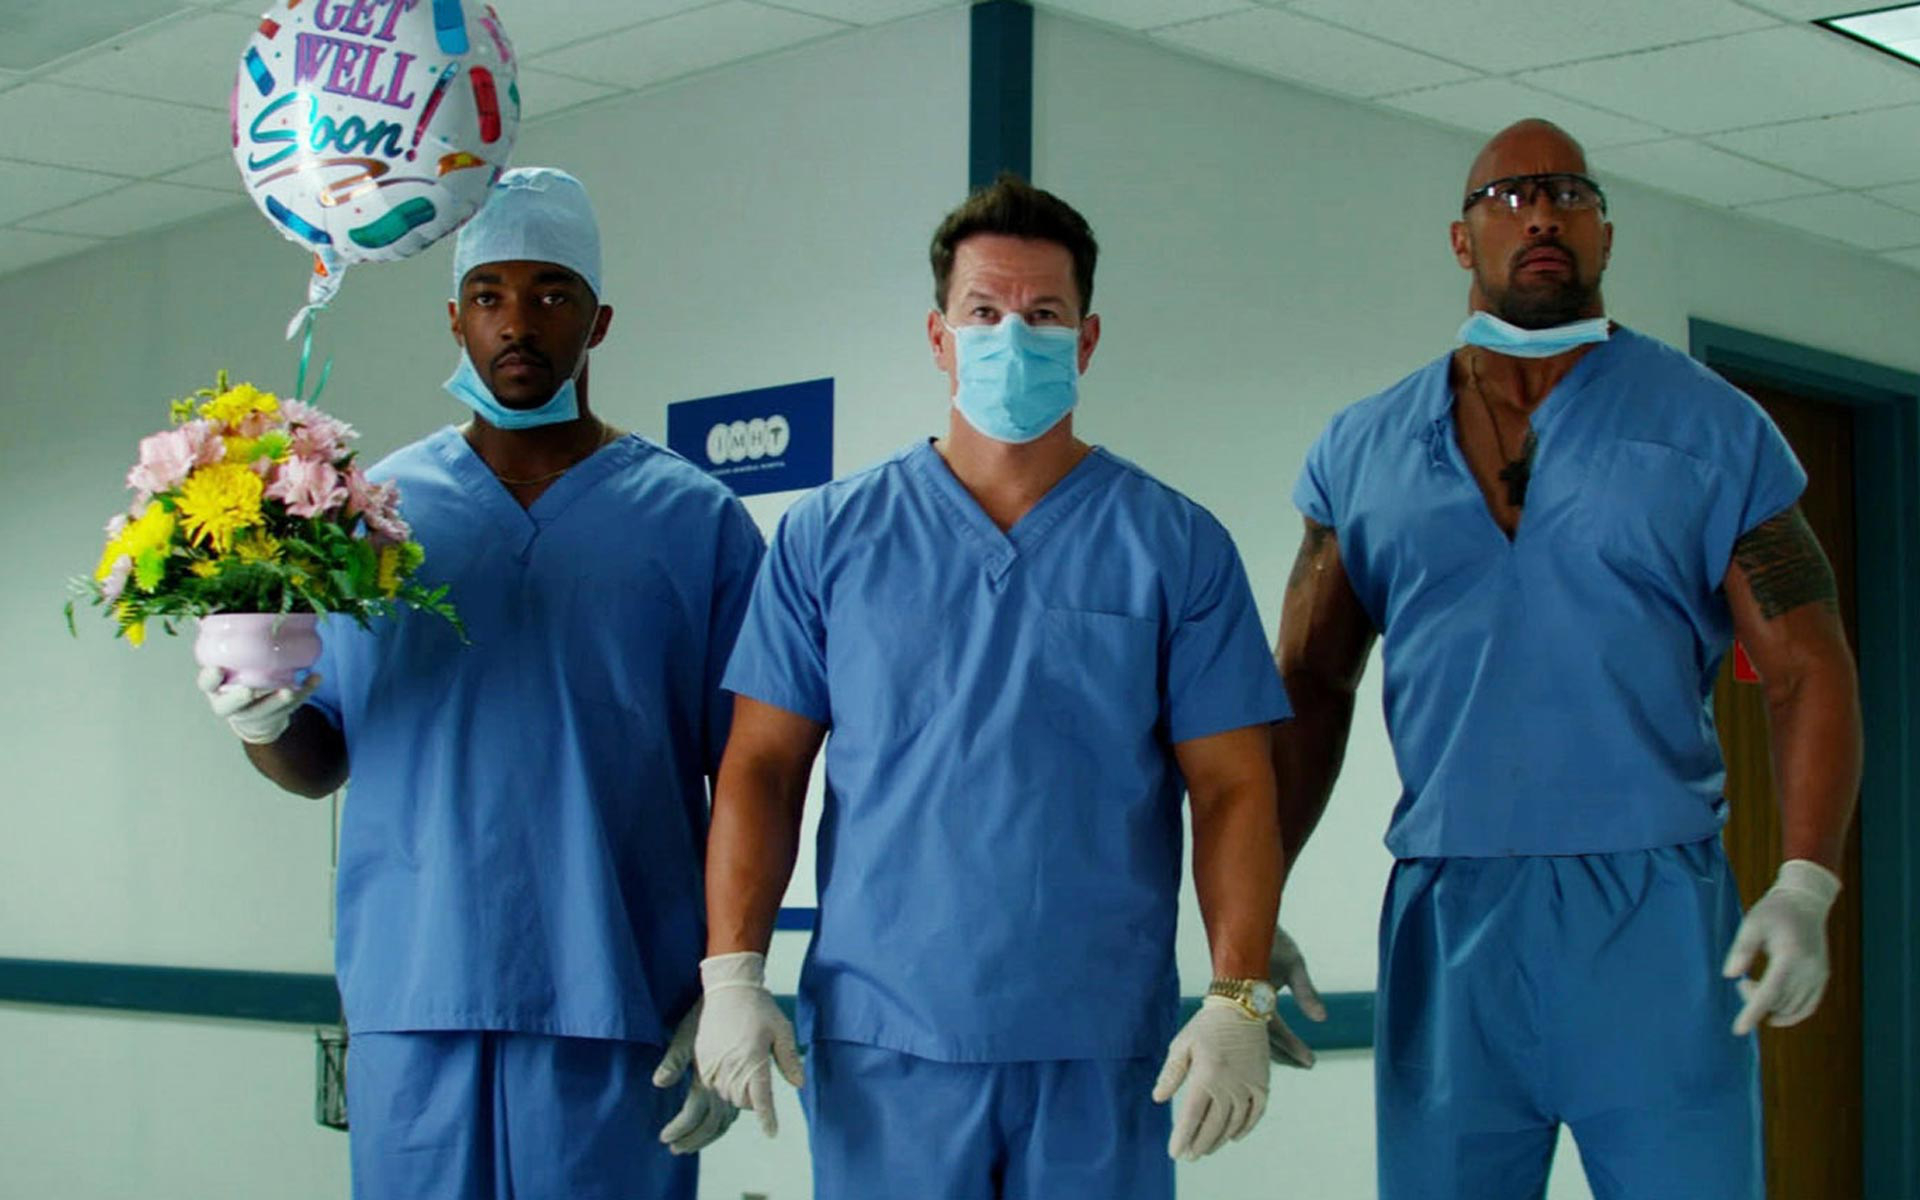 Pain & Gain HD Wallpapers 2014 - All HD Wallpapers